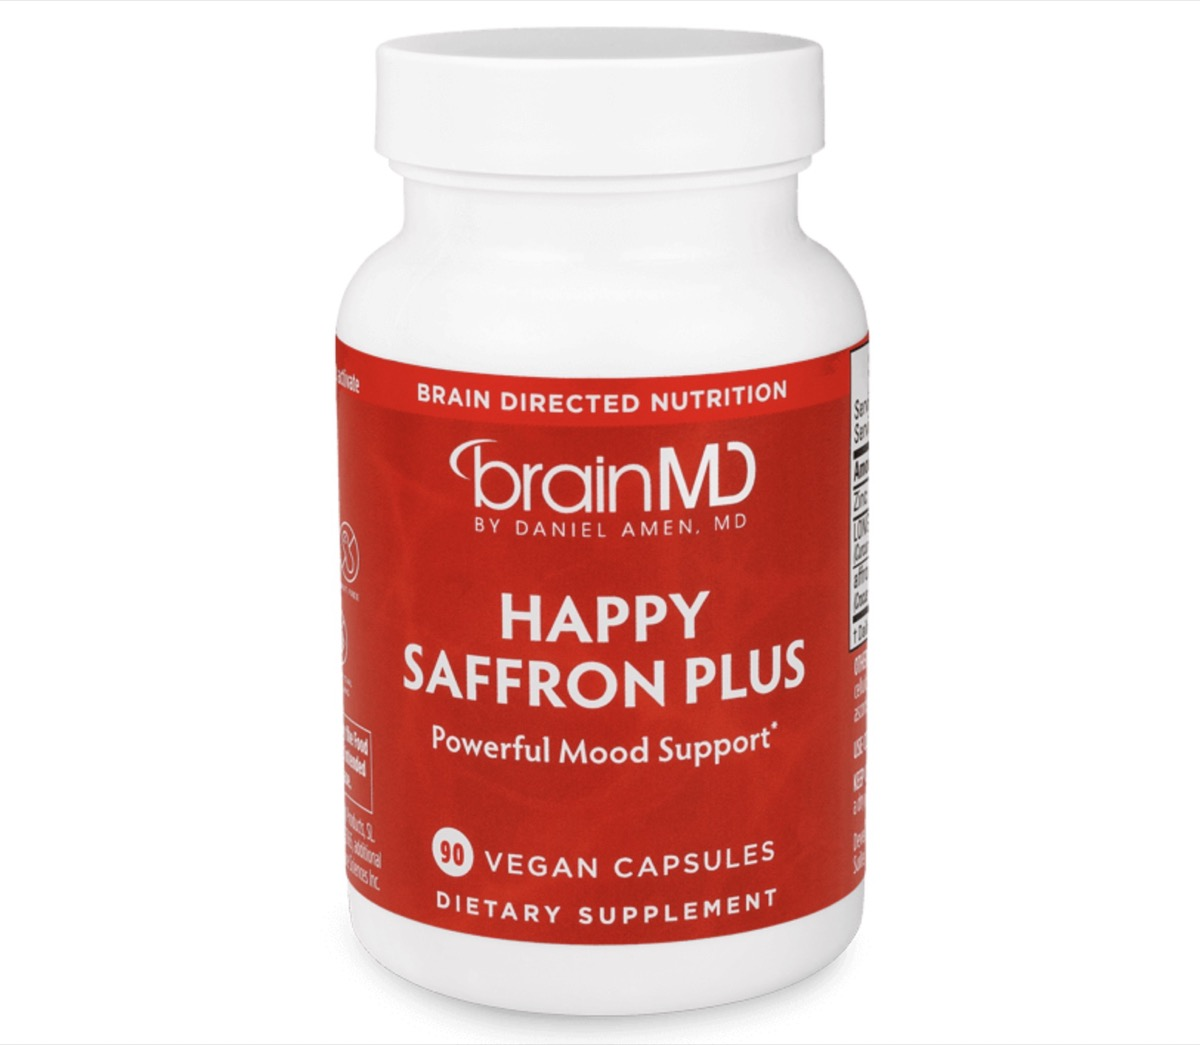 white bottle of brainmd happy saffron plus with red label on white background